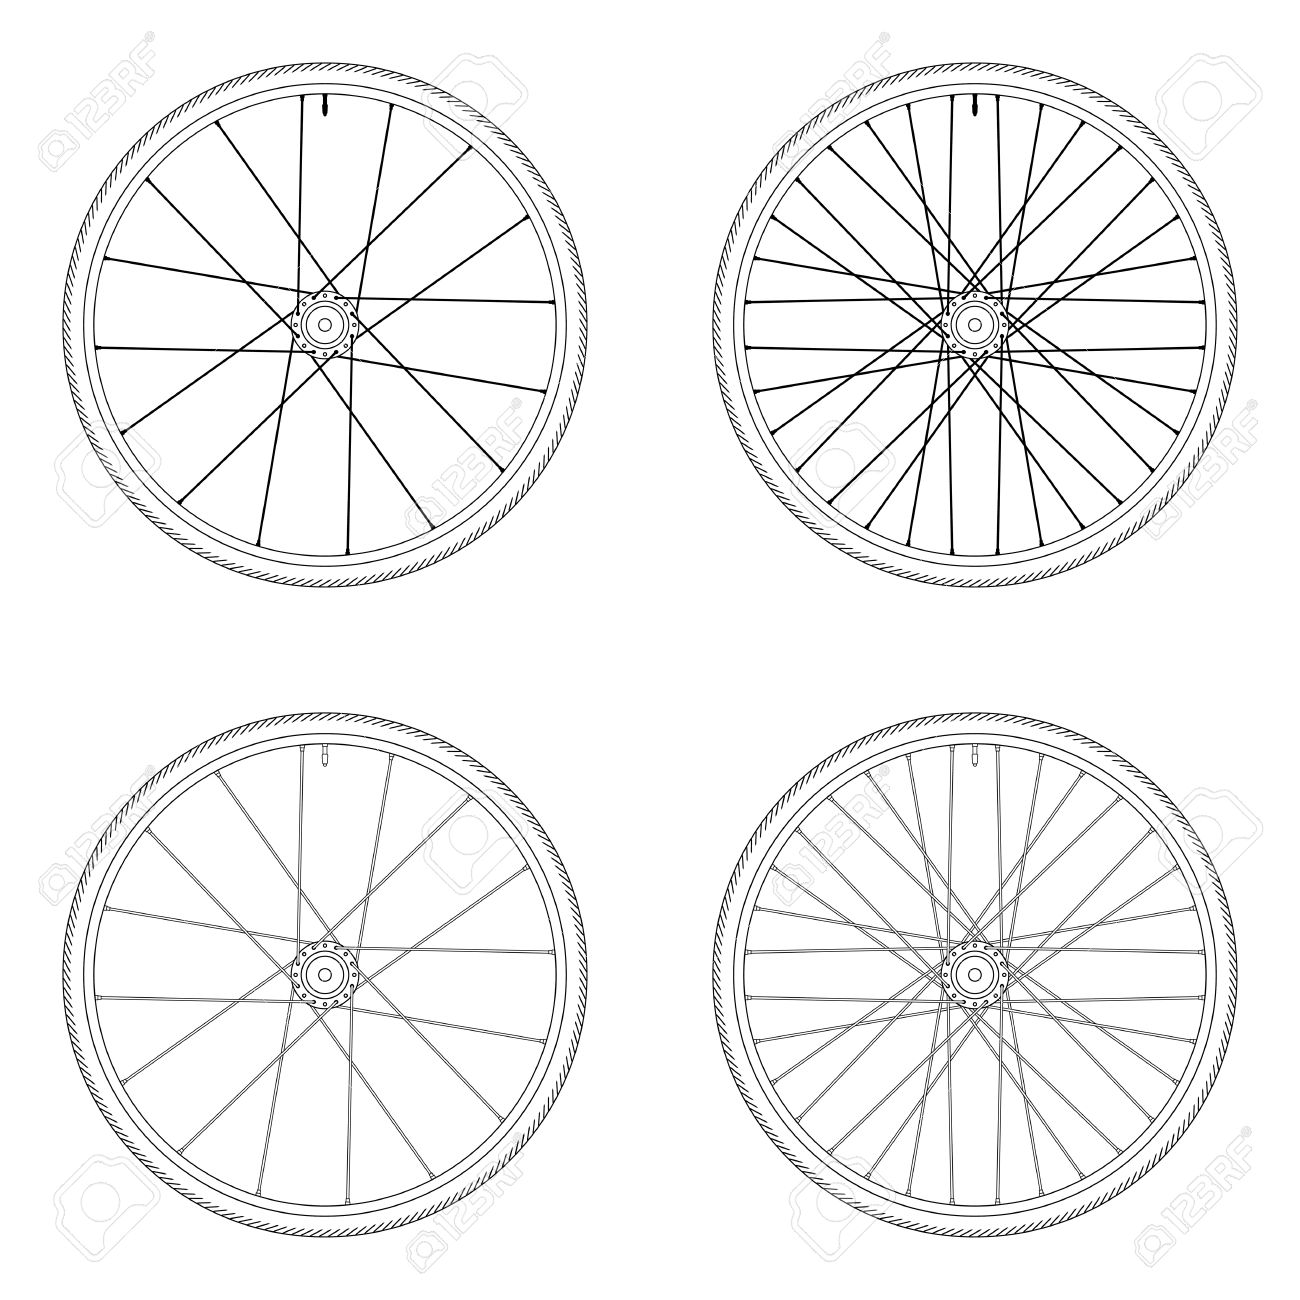 Bicycle Spoke Wheel Tangential Lacing Pattern 3x Black And White